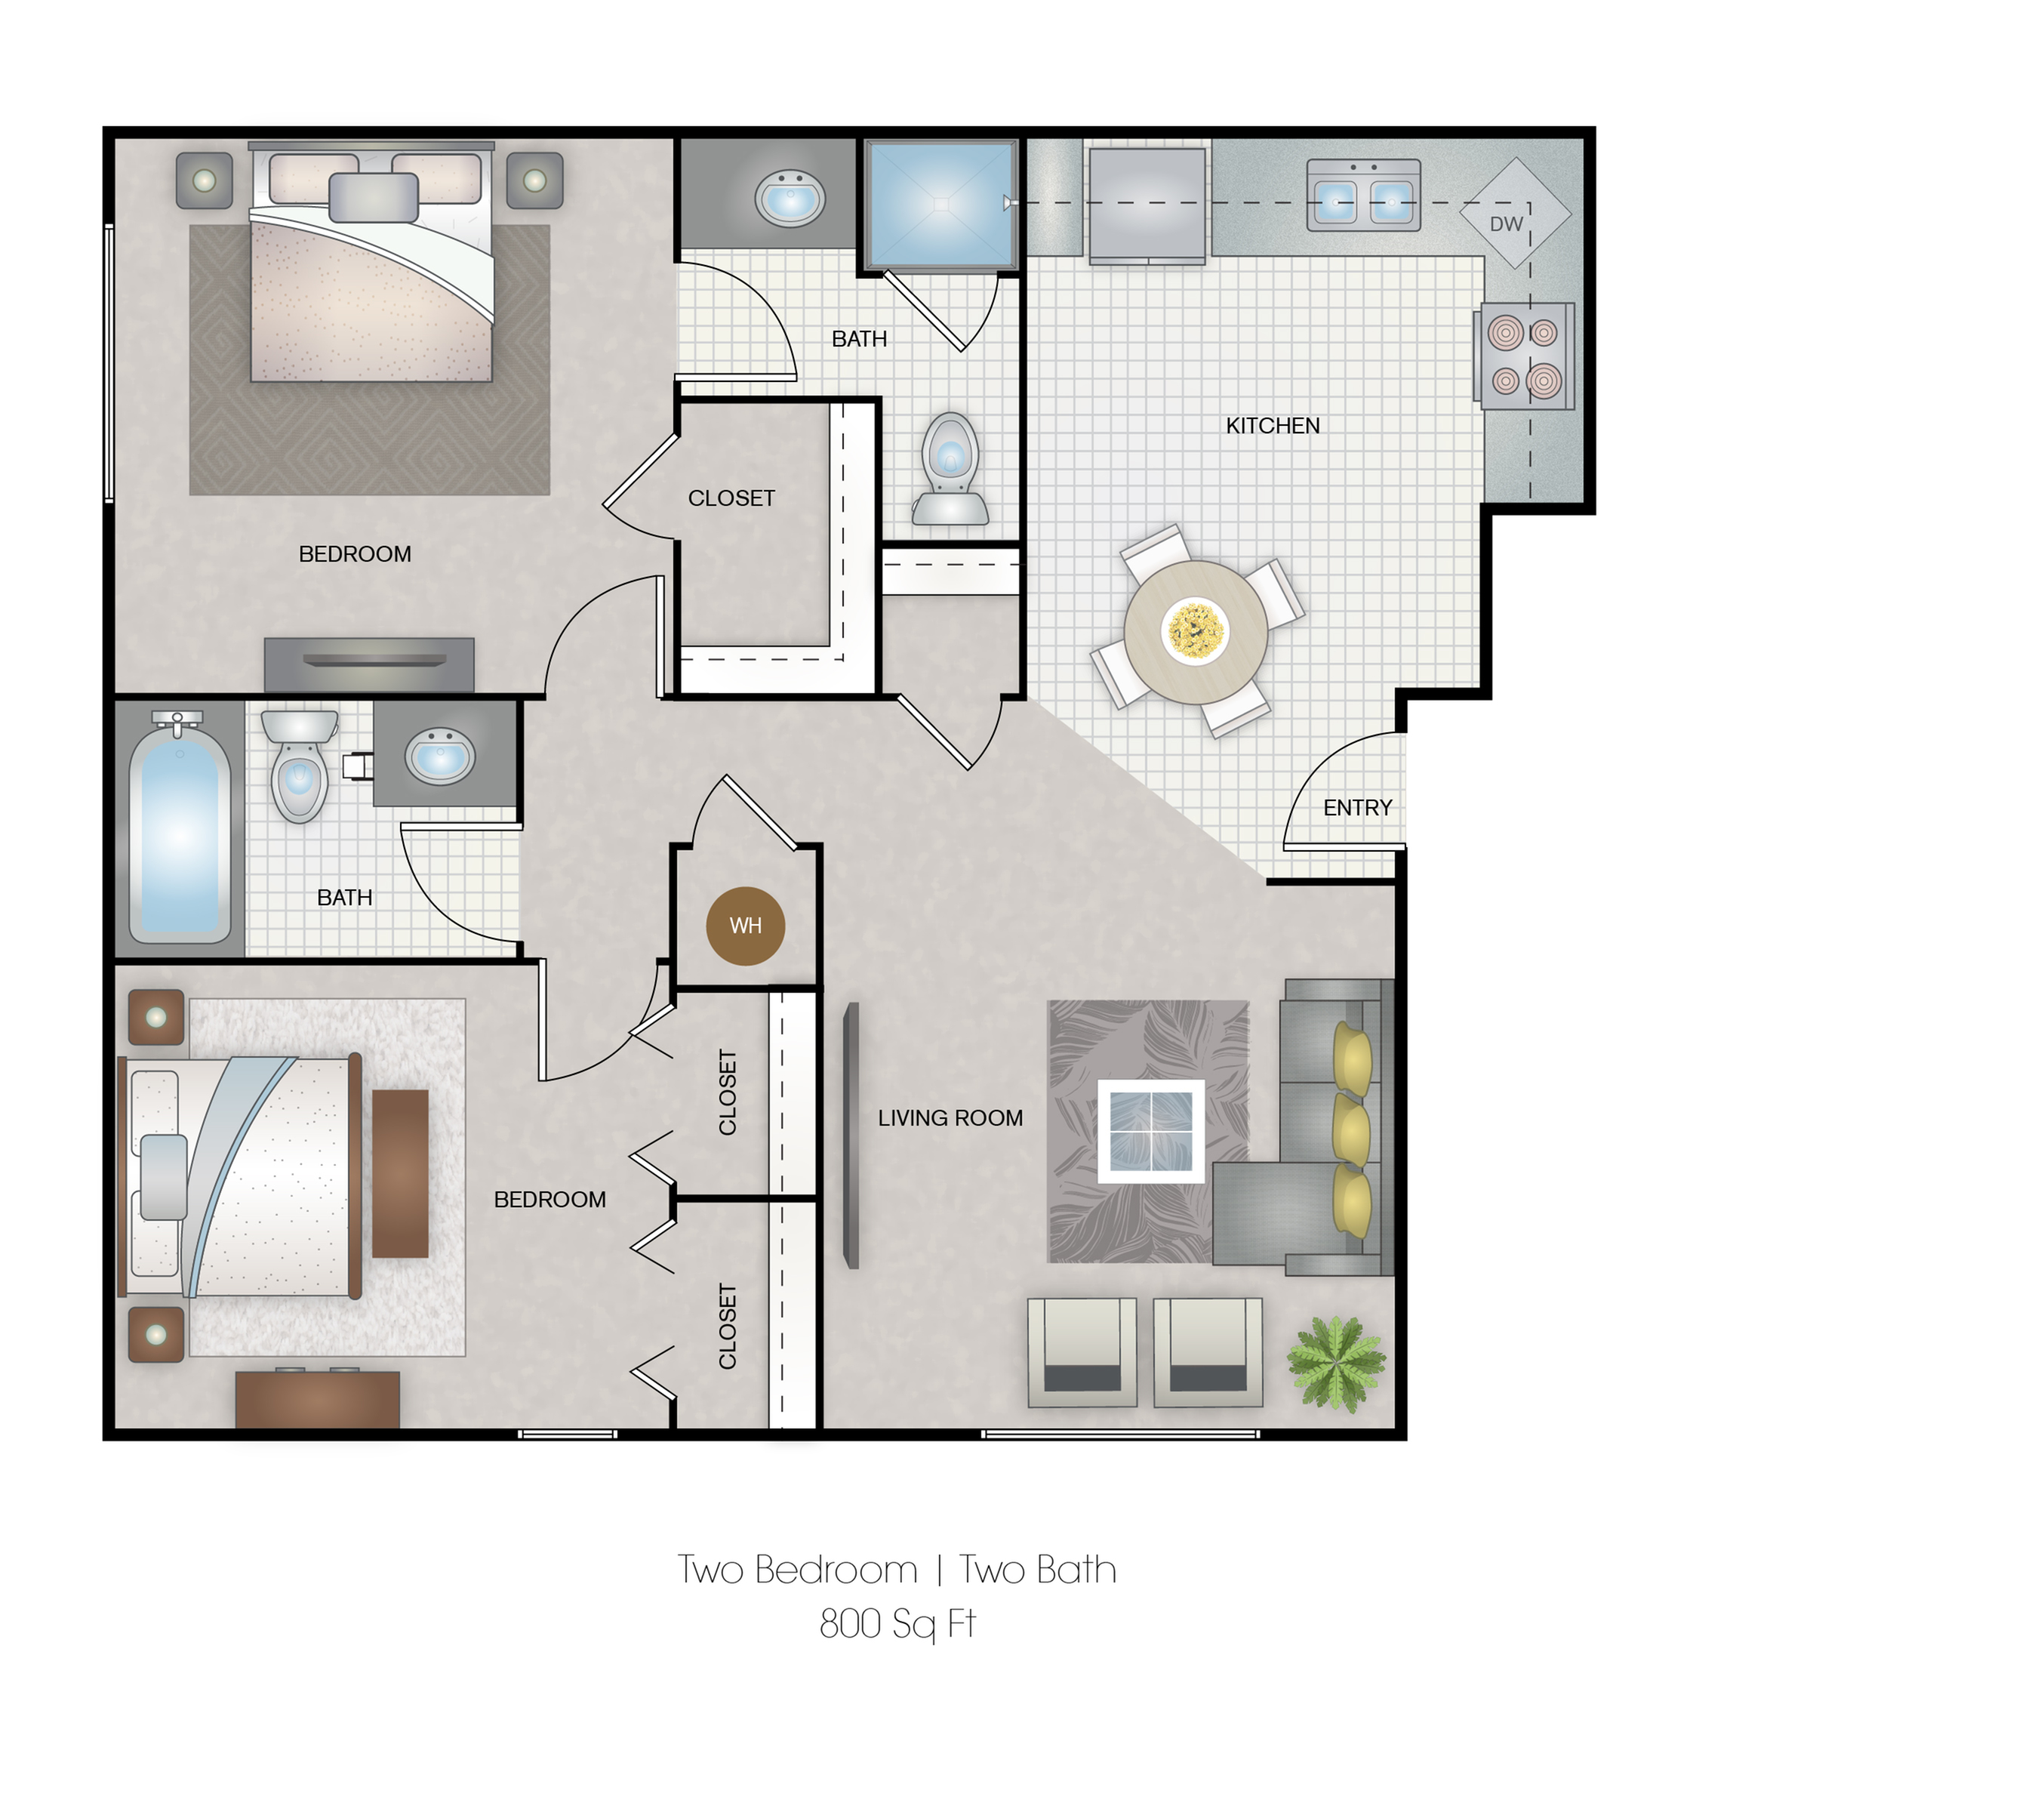 Sherwood Crossing Apartments: 2 Bed-Washer/dryer Unit